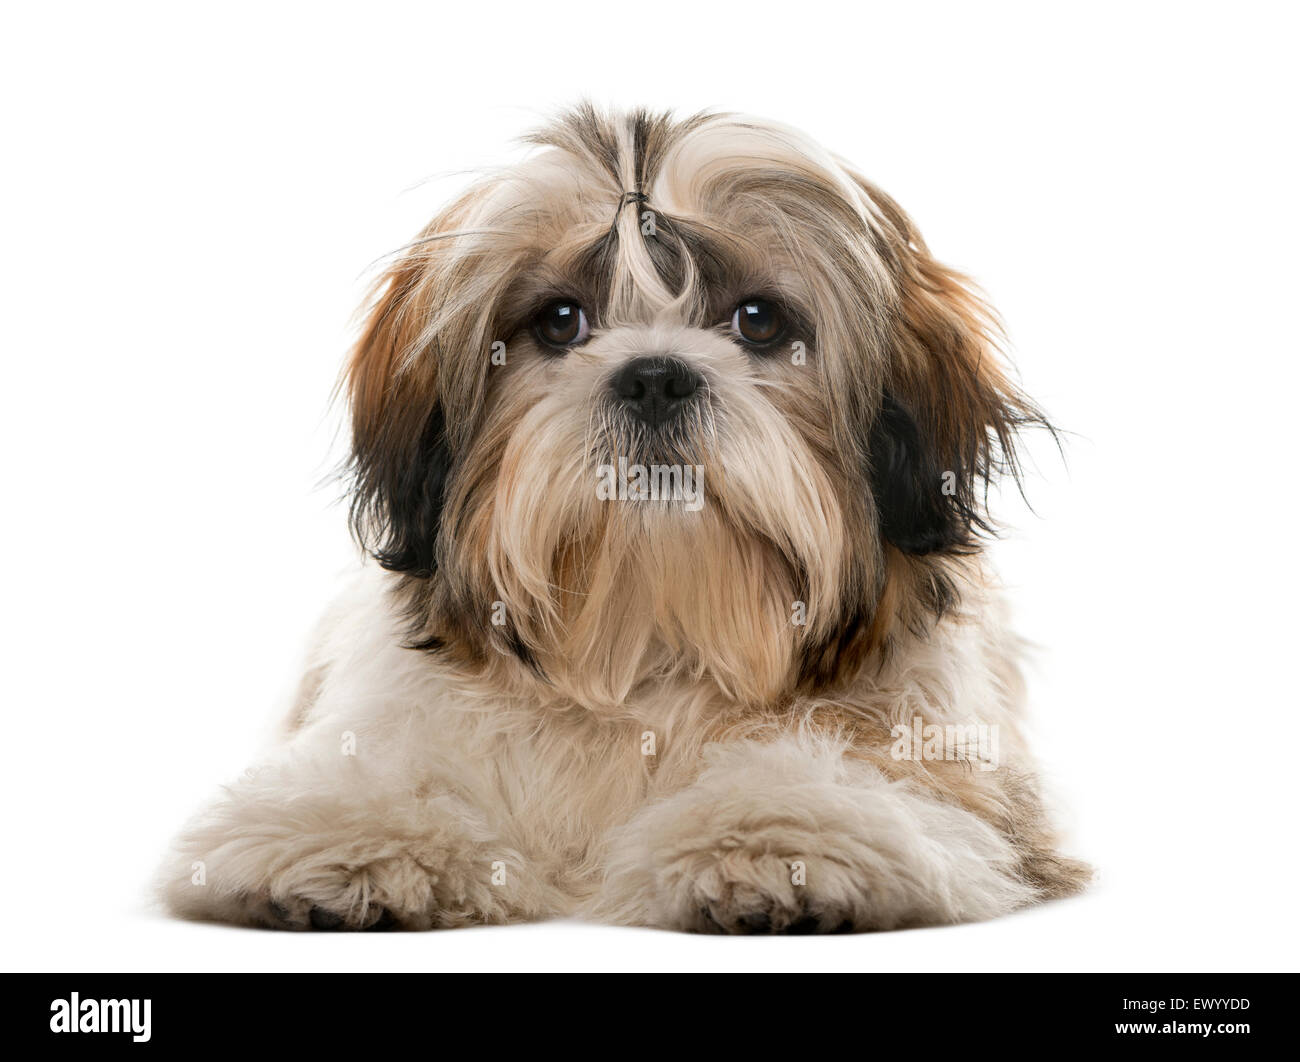 Shih Tzu in front of a white background - Stock Image